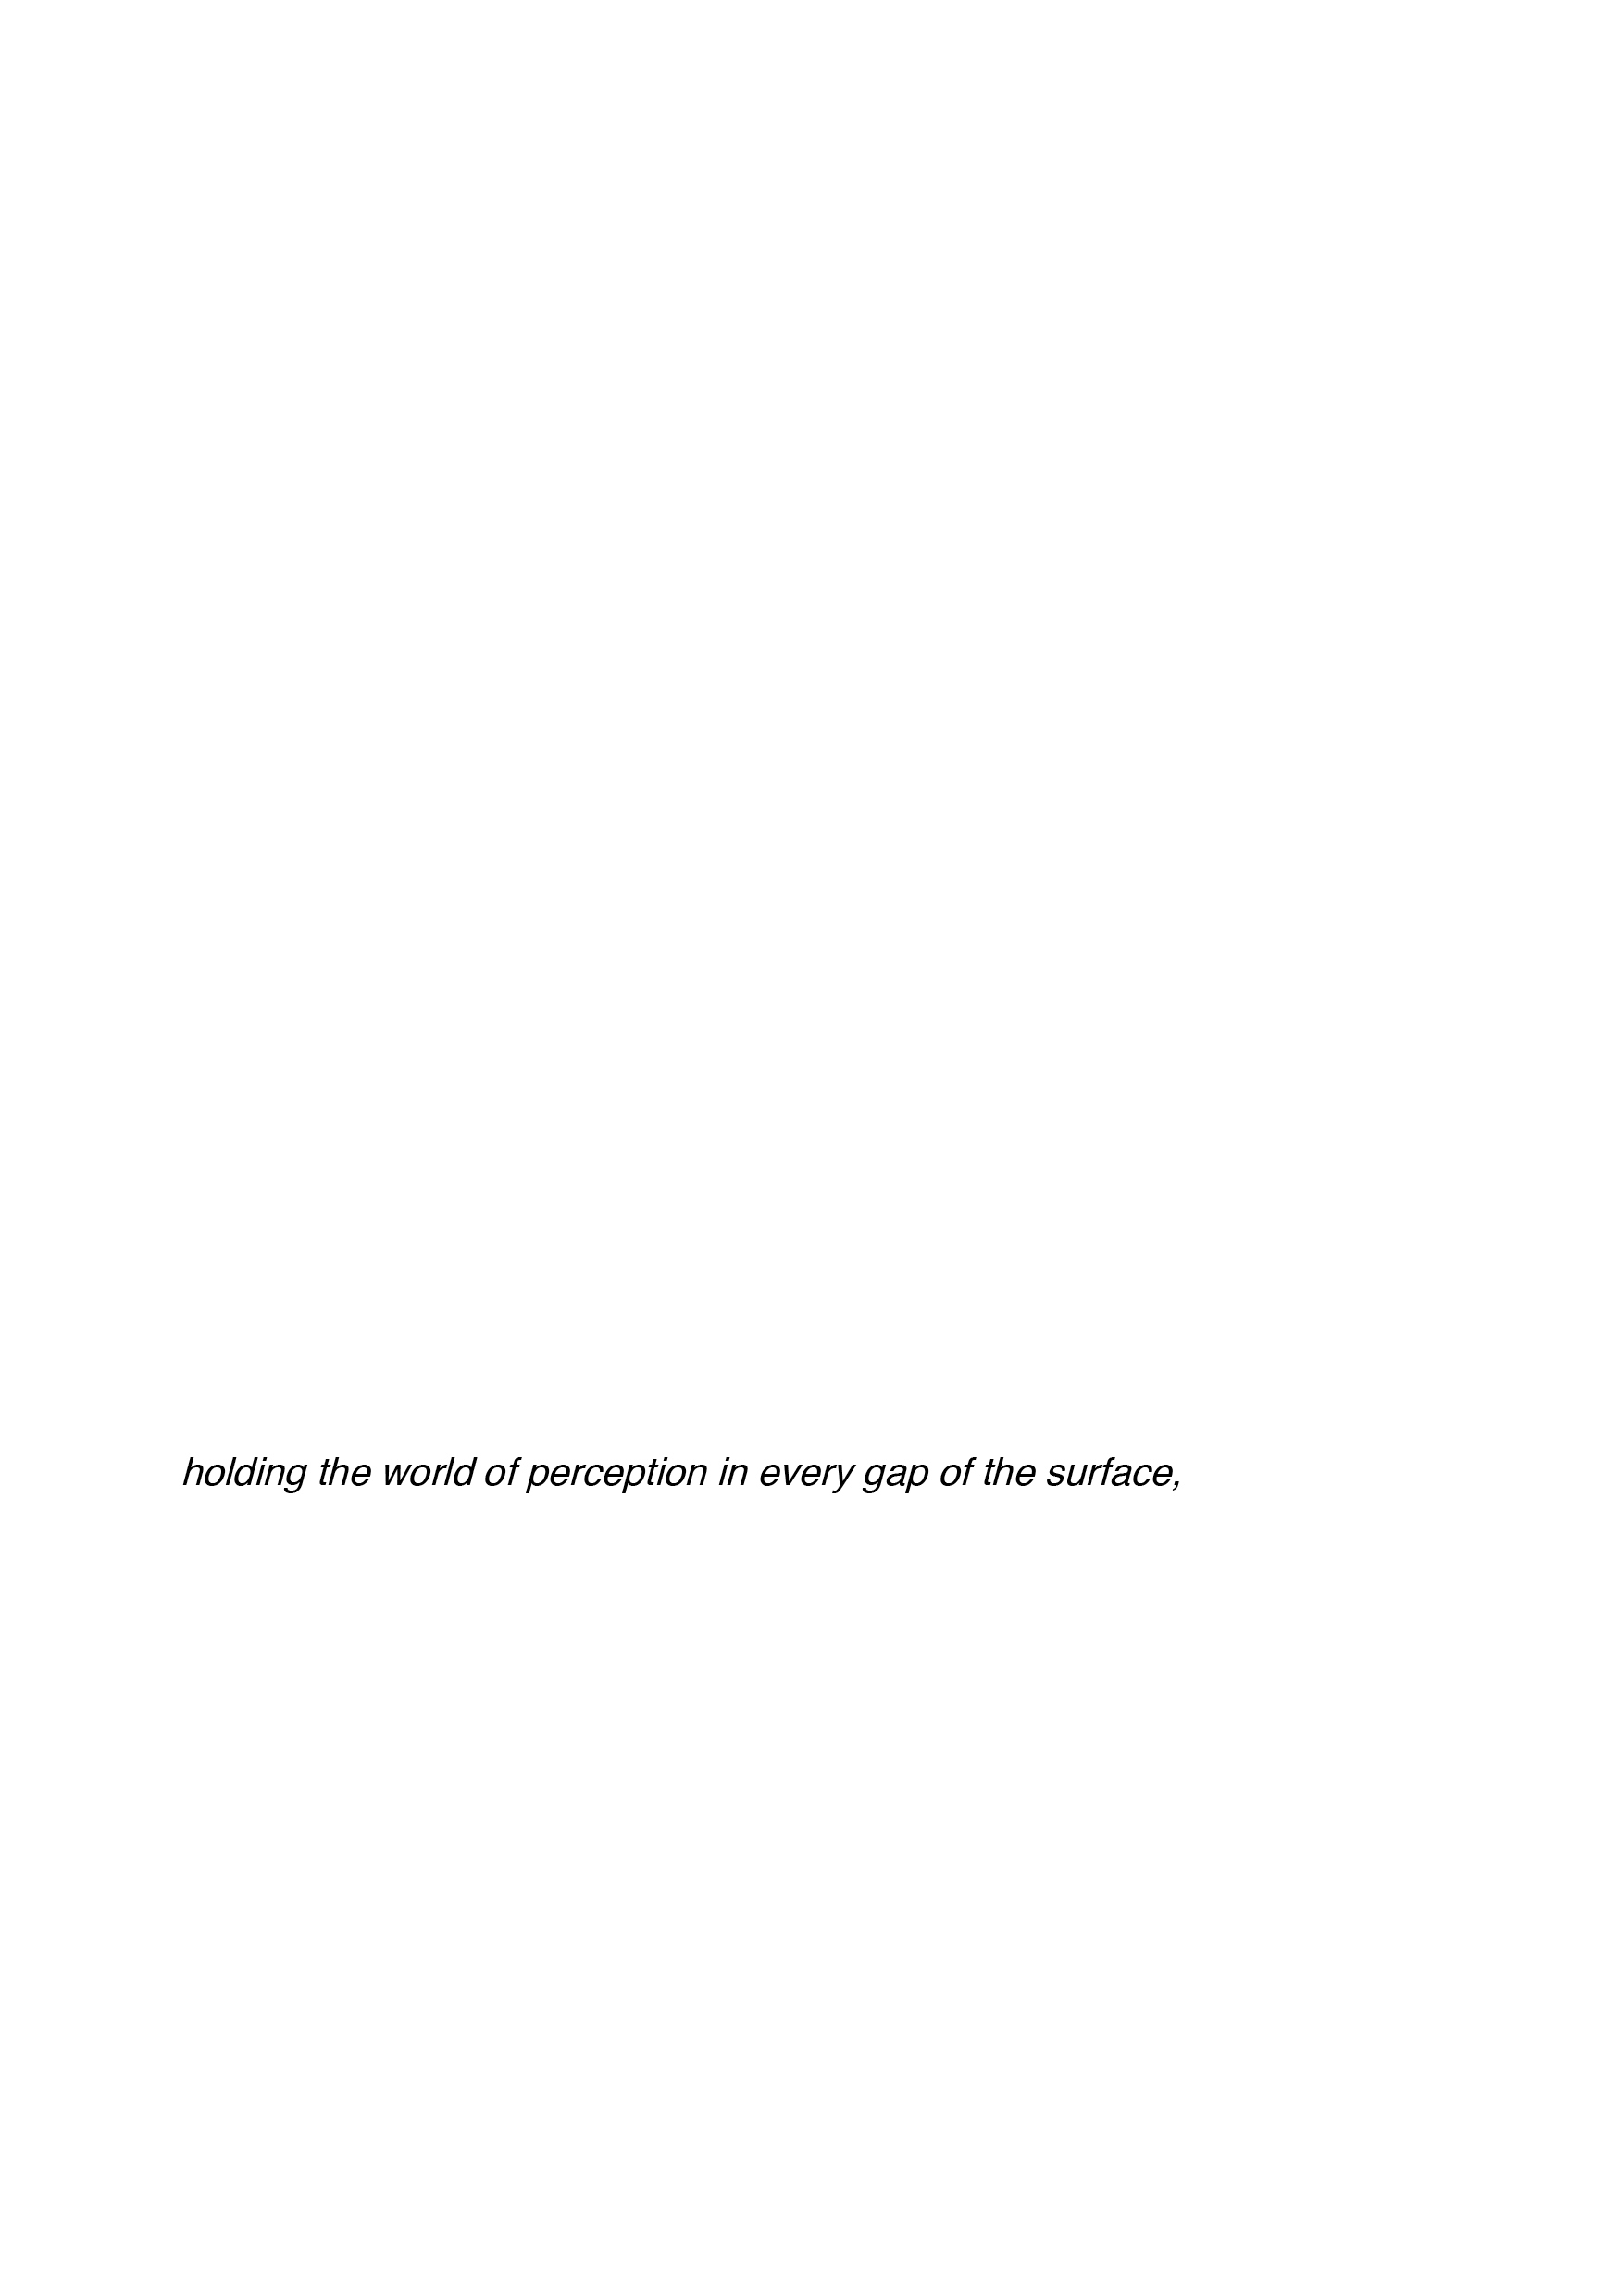 The Embodied Edit of the Parallel Space_FINAL_PDF9.jpg